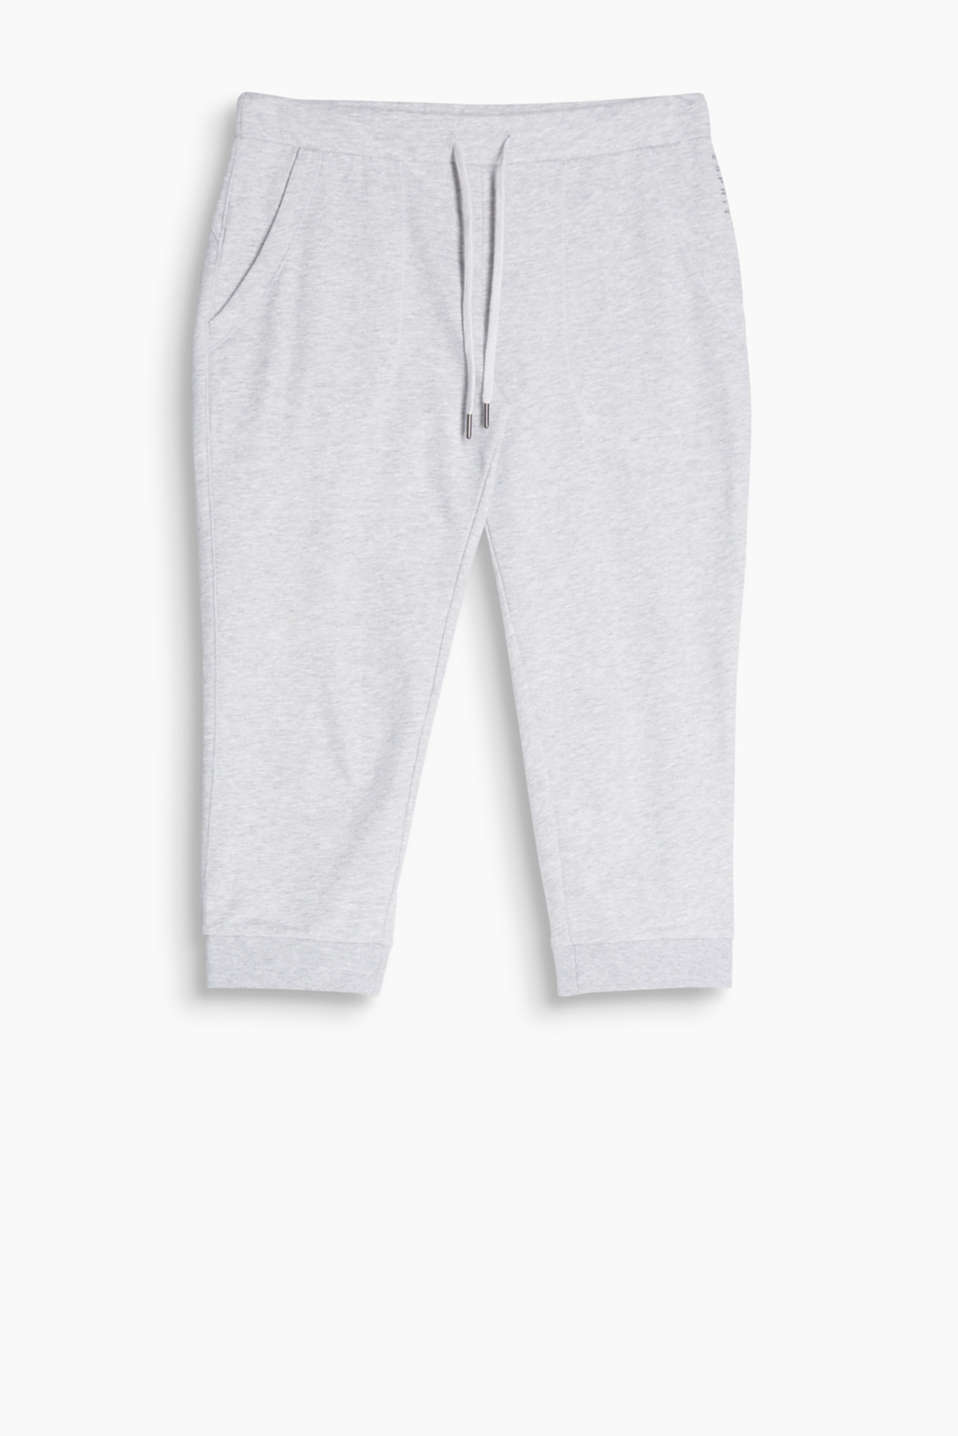 Tracksuit bottoms with elasticated drawstring ties and a modern 3/4-length leg with a cuff